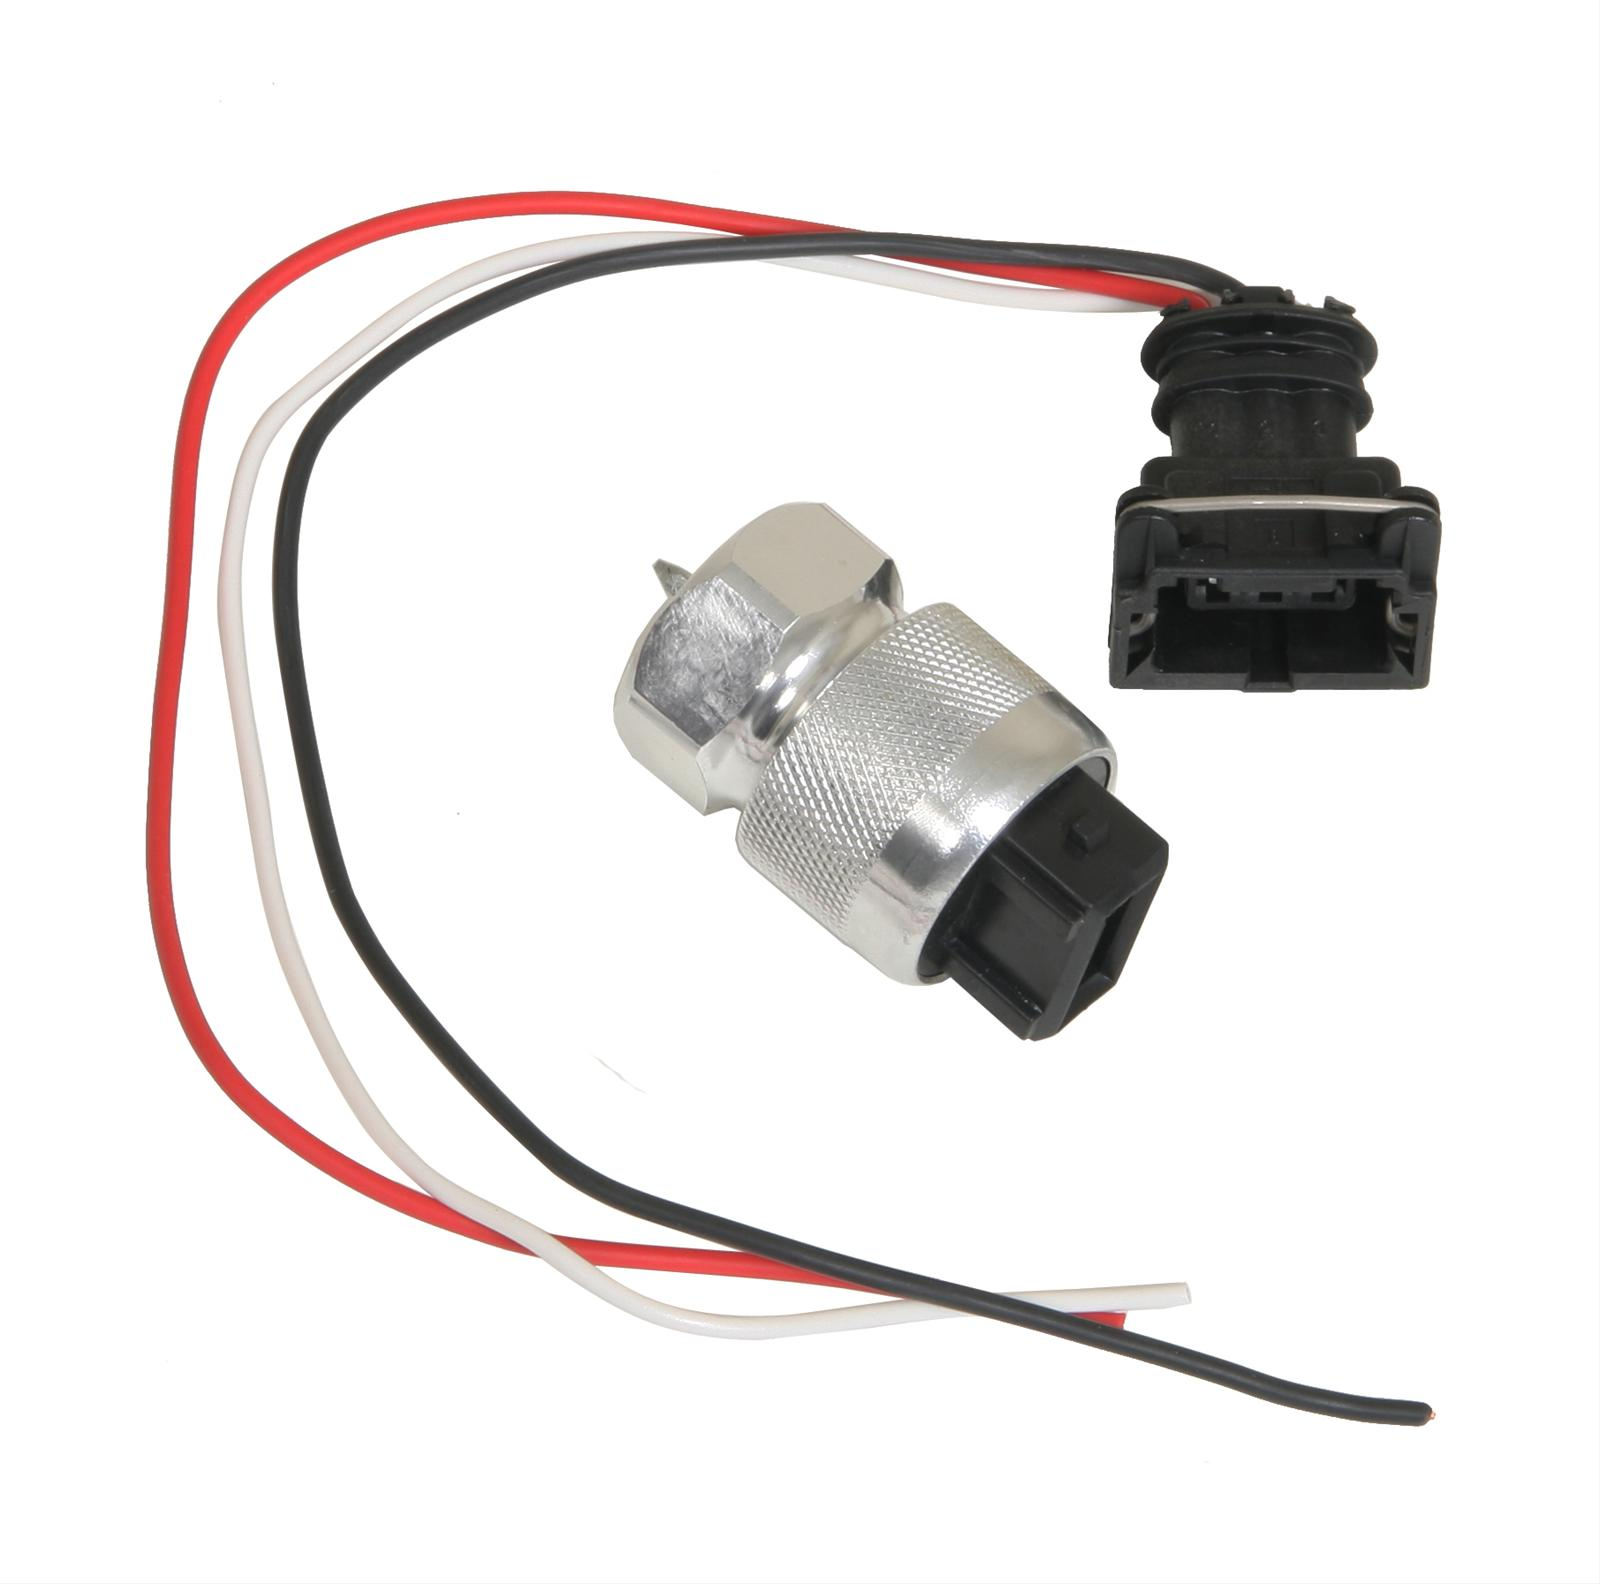 hight resolution of summit racing speedometer sending units sum 800600gm free shipping on orders over 99 at summit racing